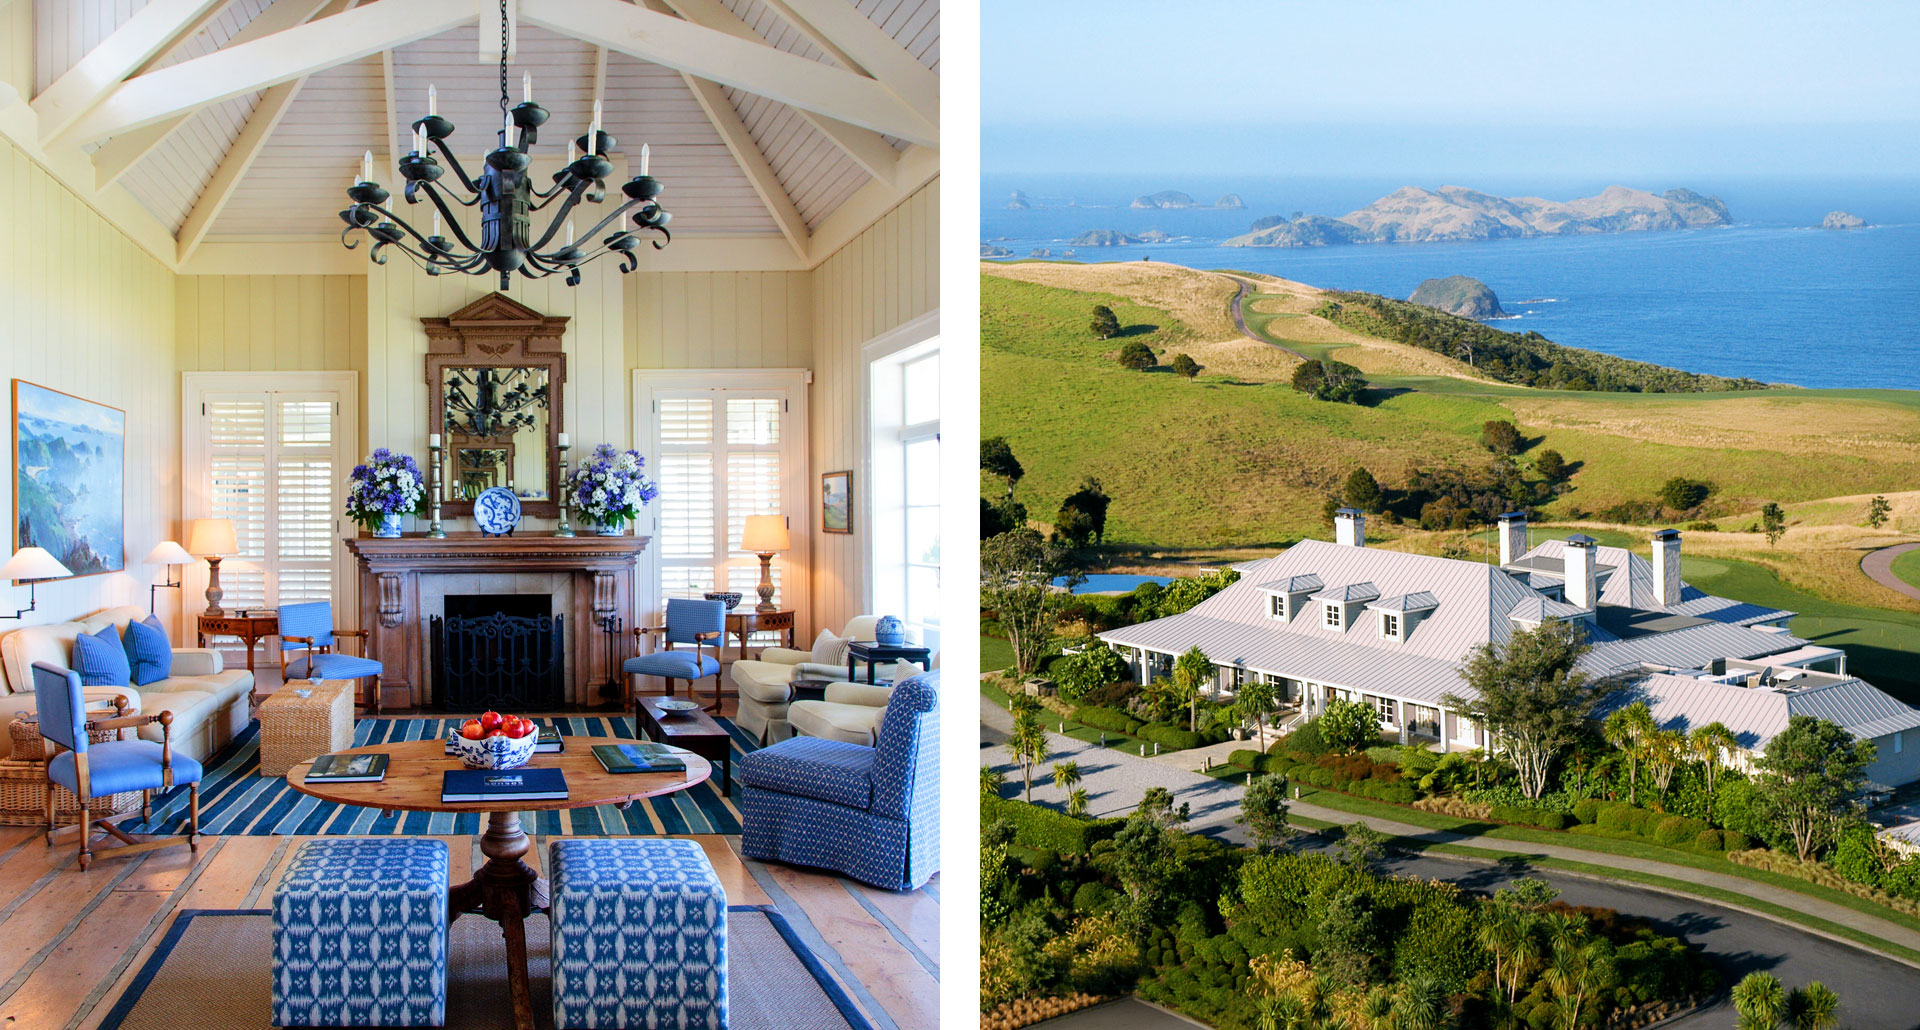 The Lodge at Kauri Cliffs - boutique hotel in Bay of Islands